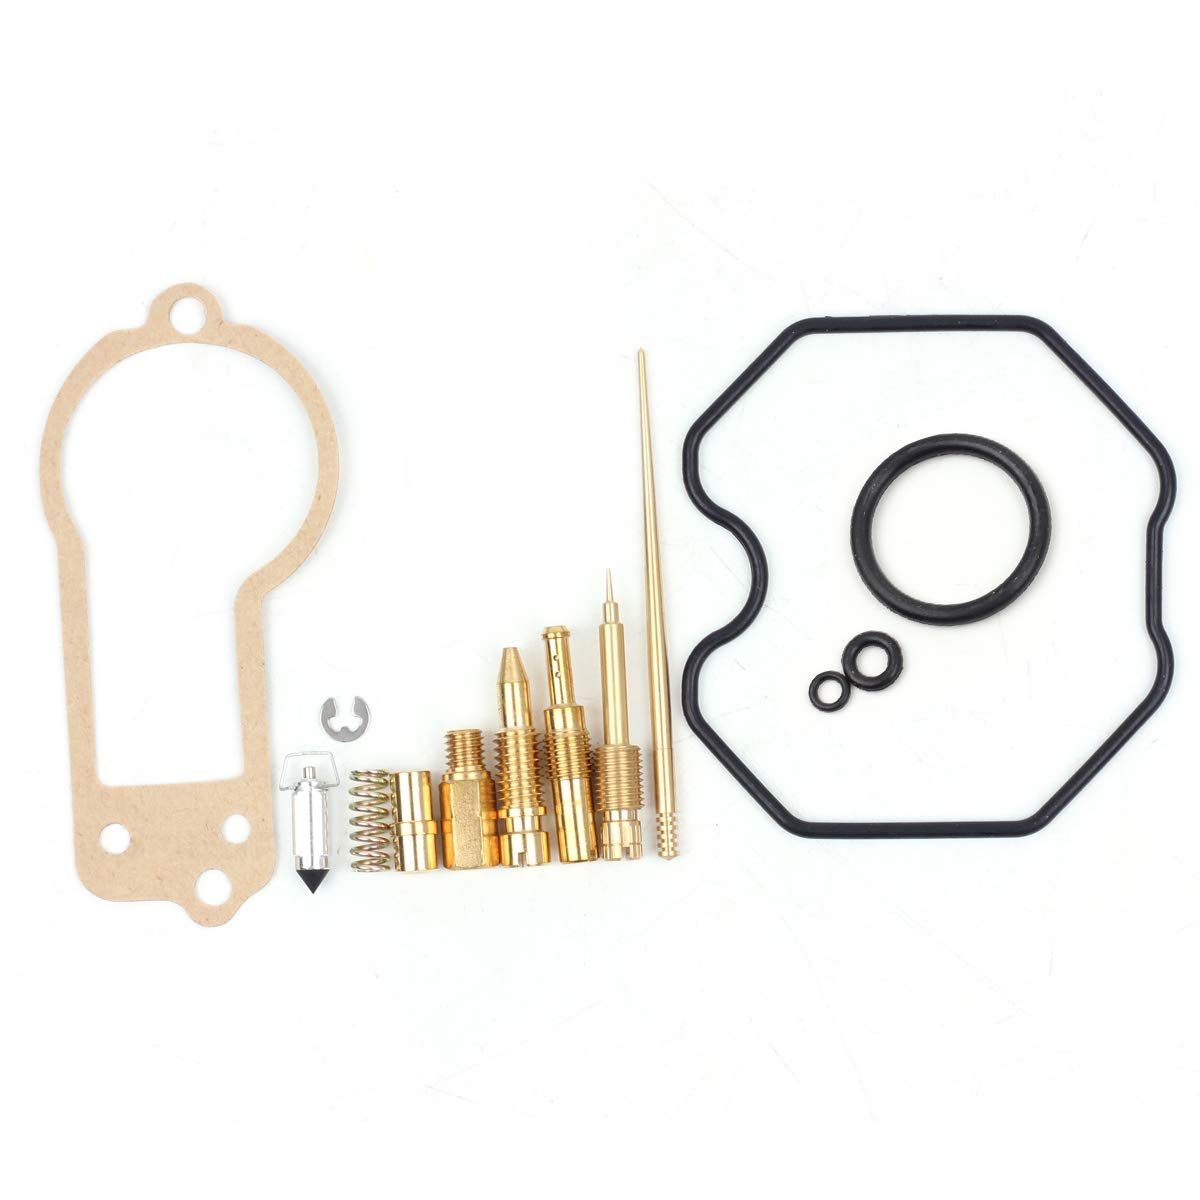 Carburetor Rebuild Kit for XR250R 1986 1987 1988 1989 1990 1991 1992 1993 1994 1995